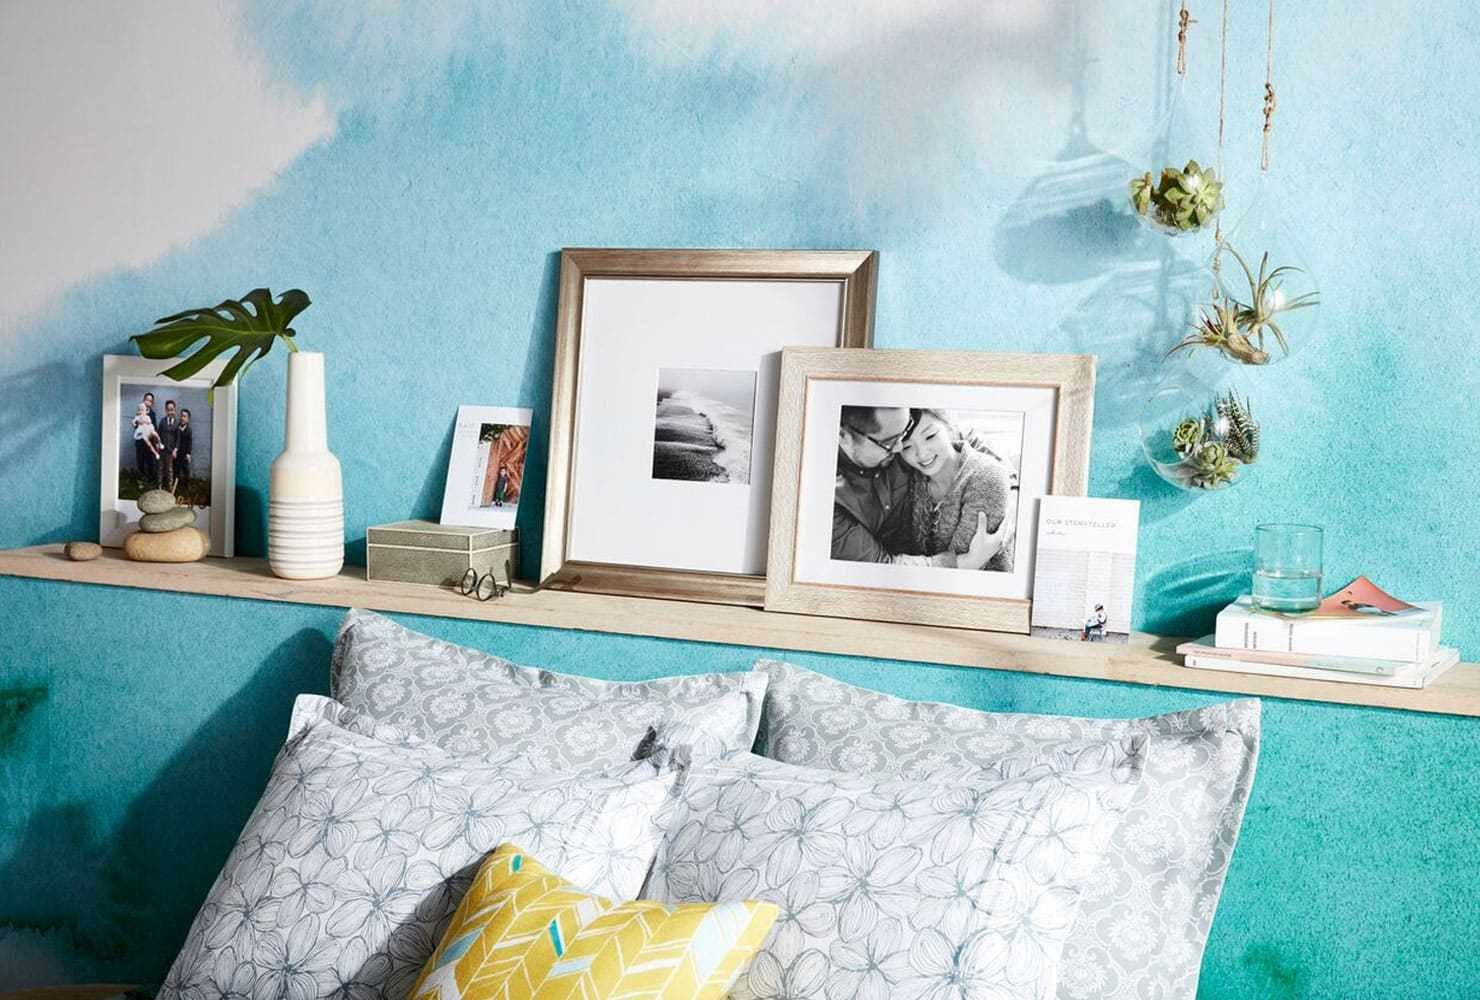 Best 24 Diy Bedroom Decor Ideas To Inspire You With Printables Shutterfly With Pictures